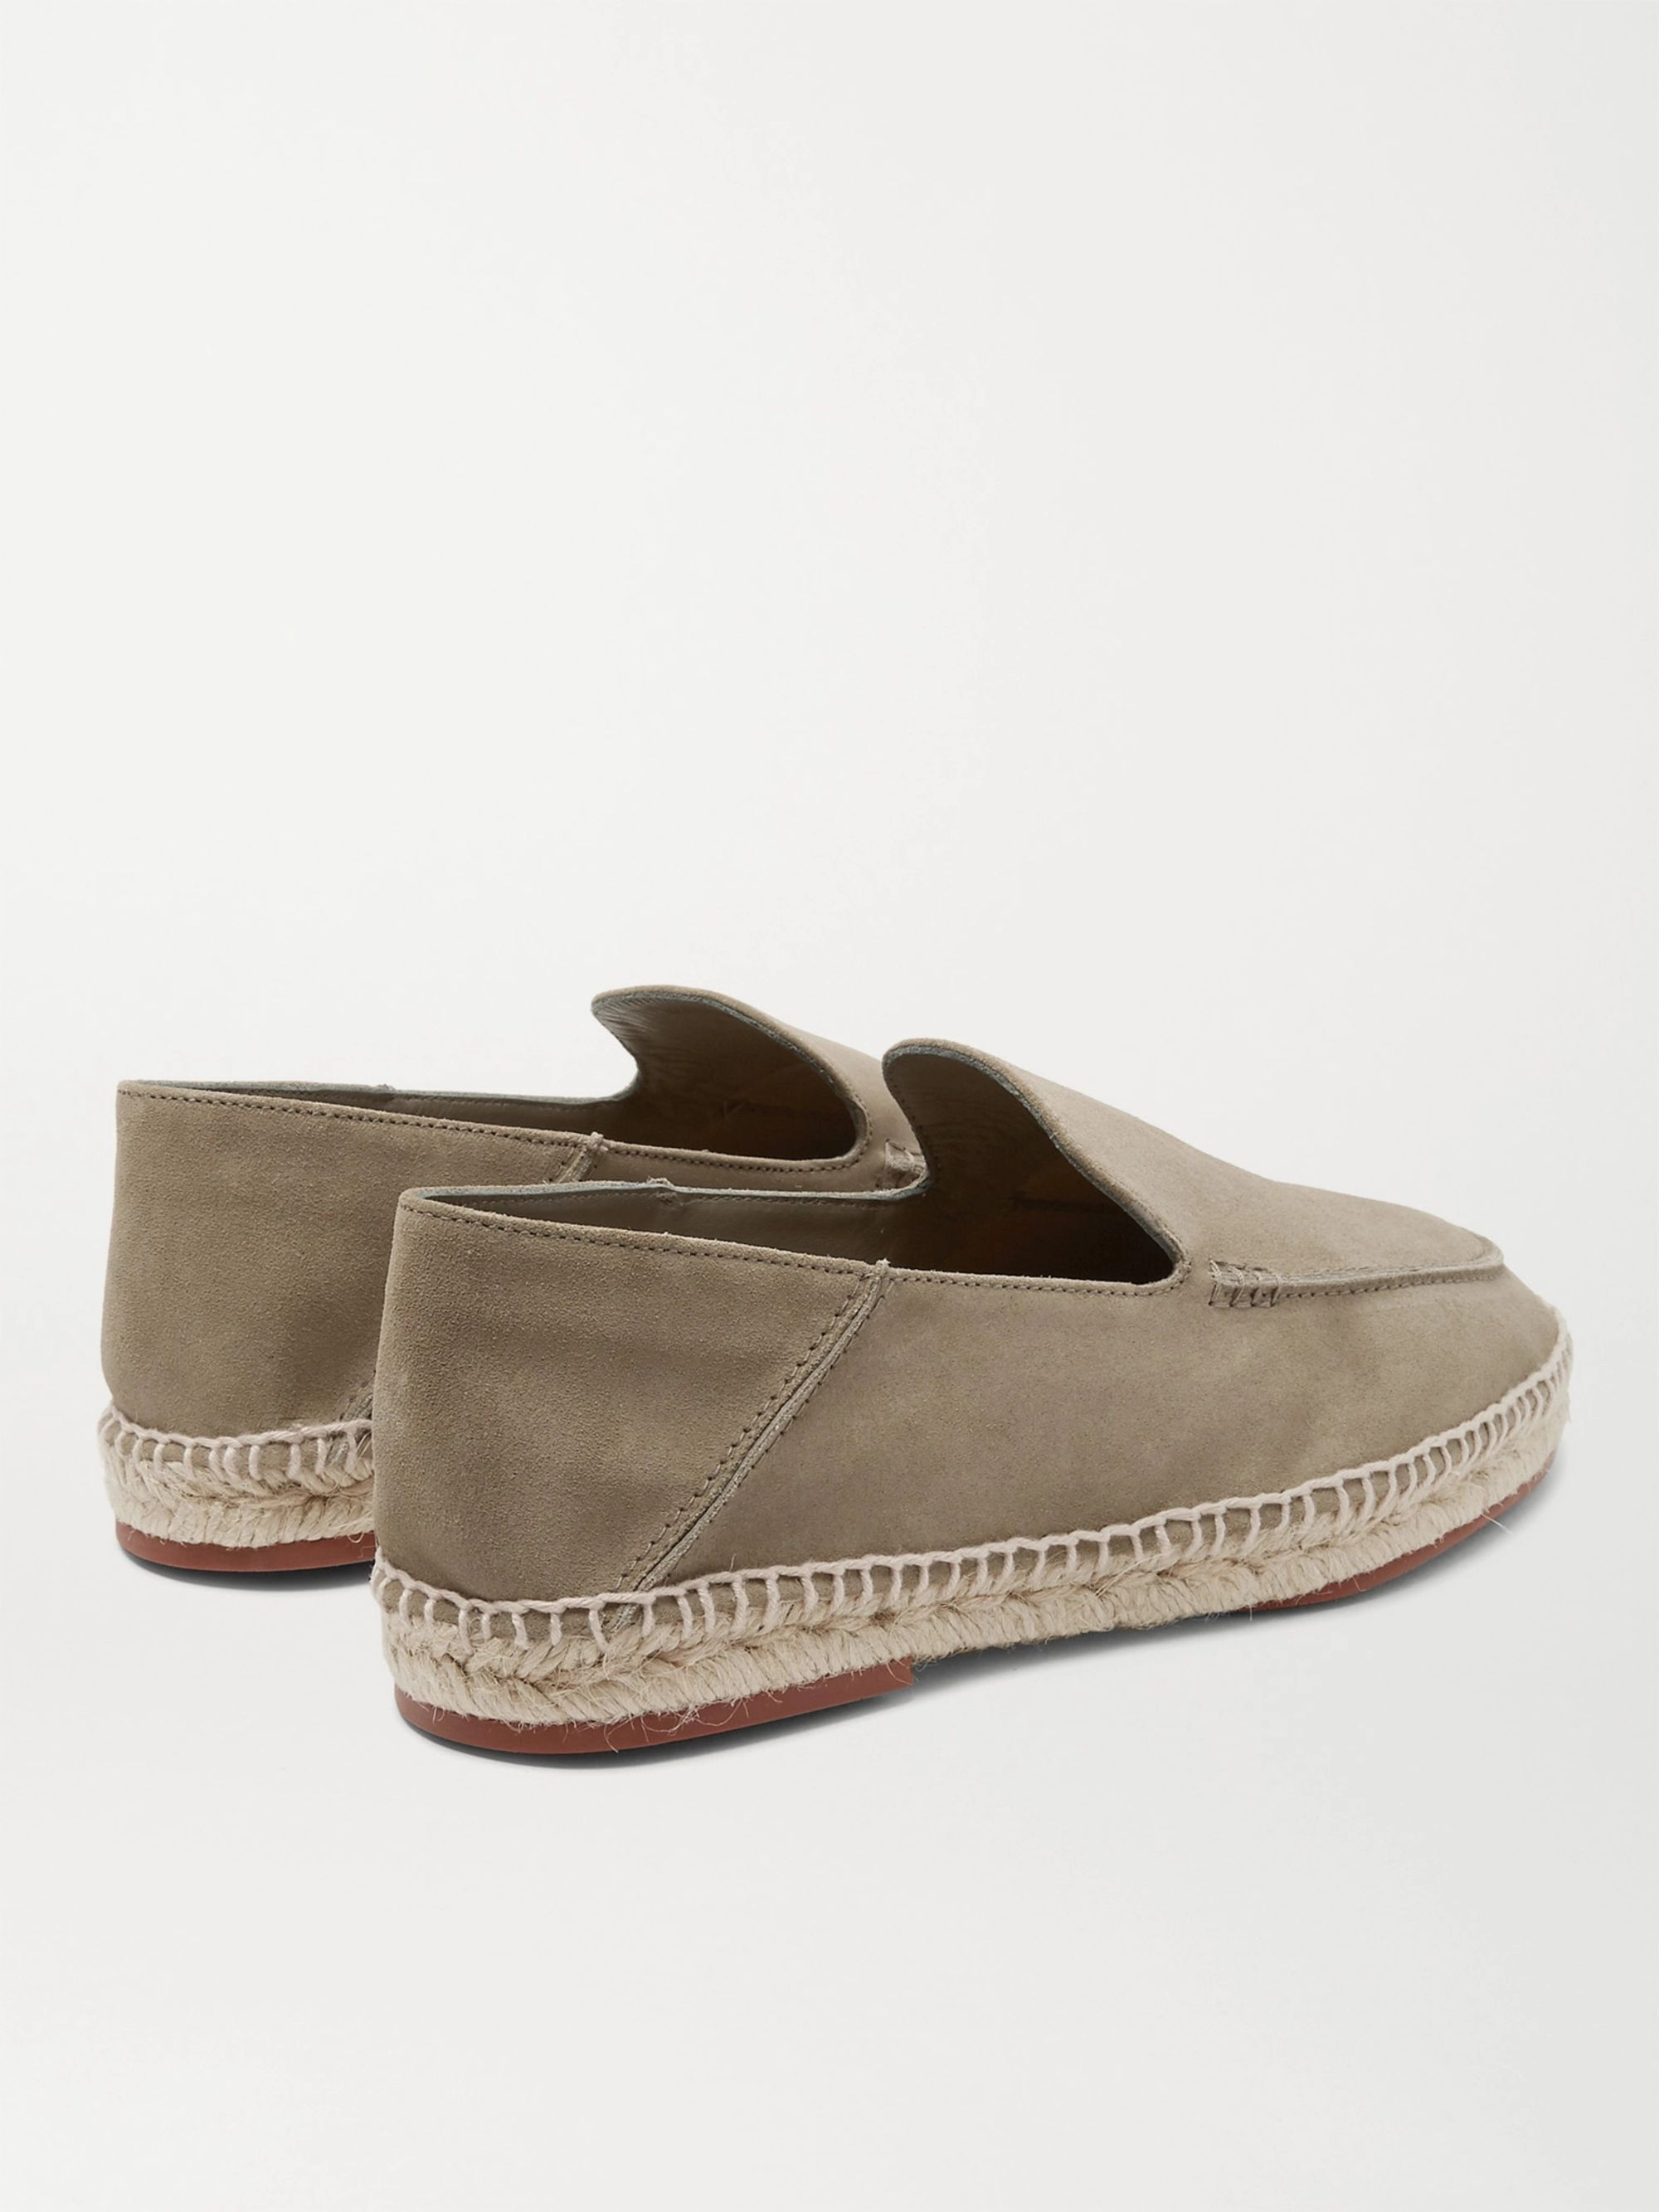 Loro Piana Seaside Walk Collapsible-Heel Suede Espadrilles